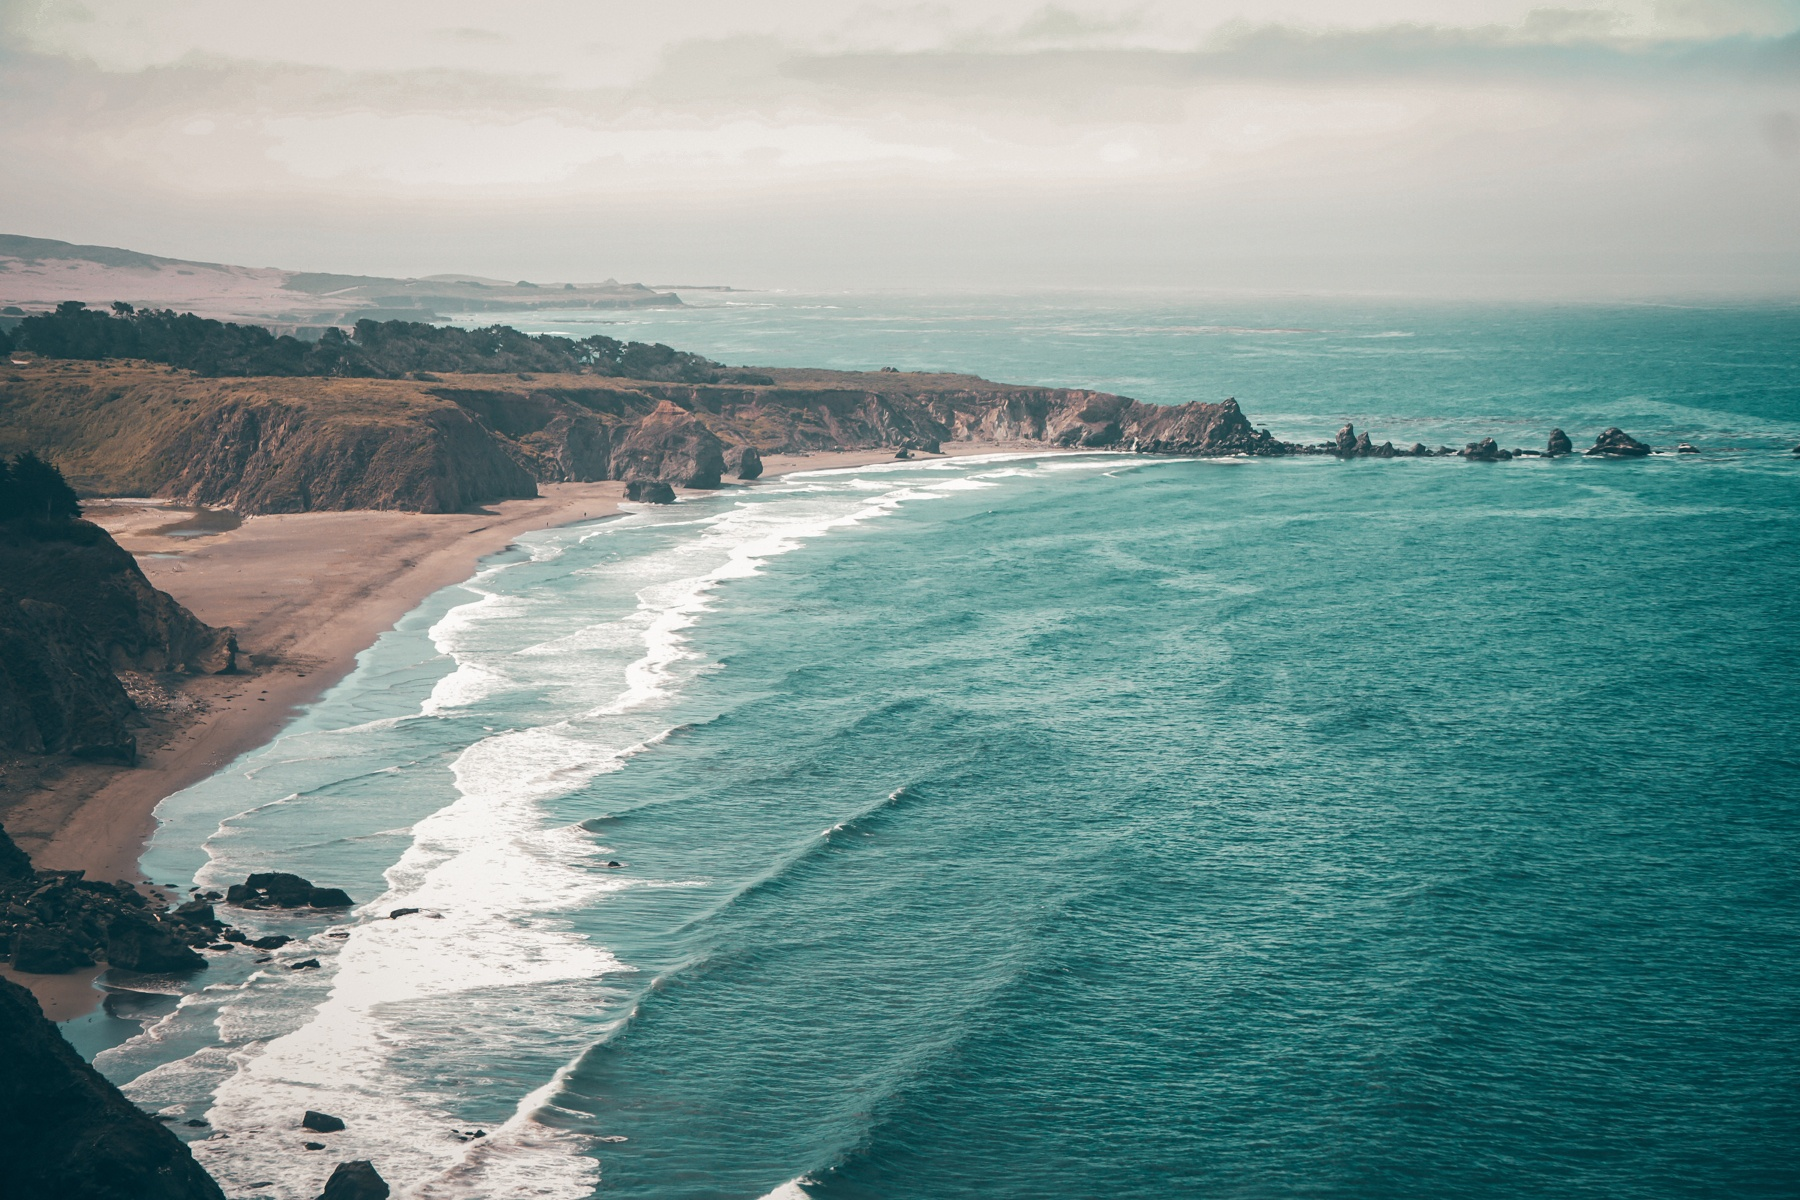 An ocean view in California, where sellers must disclose items in a statement when they transfer the house to a buyer.